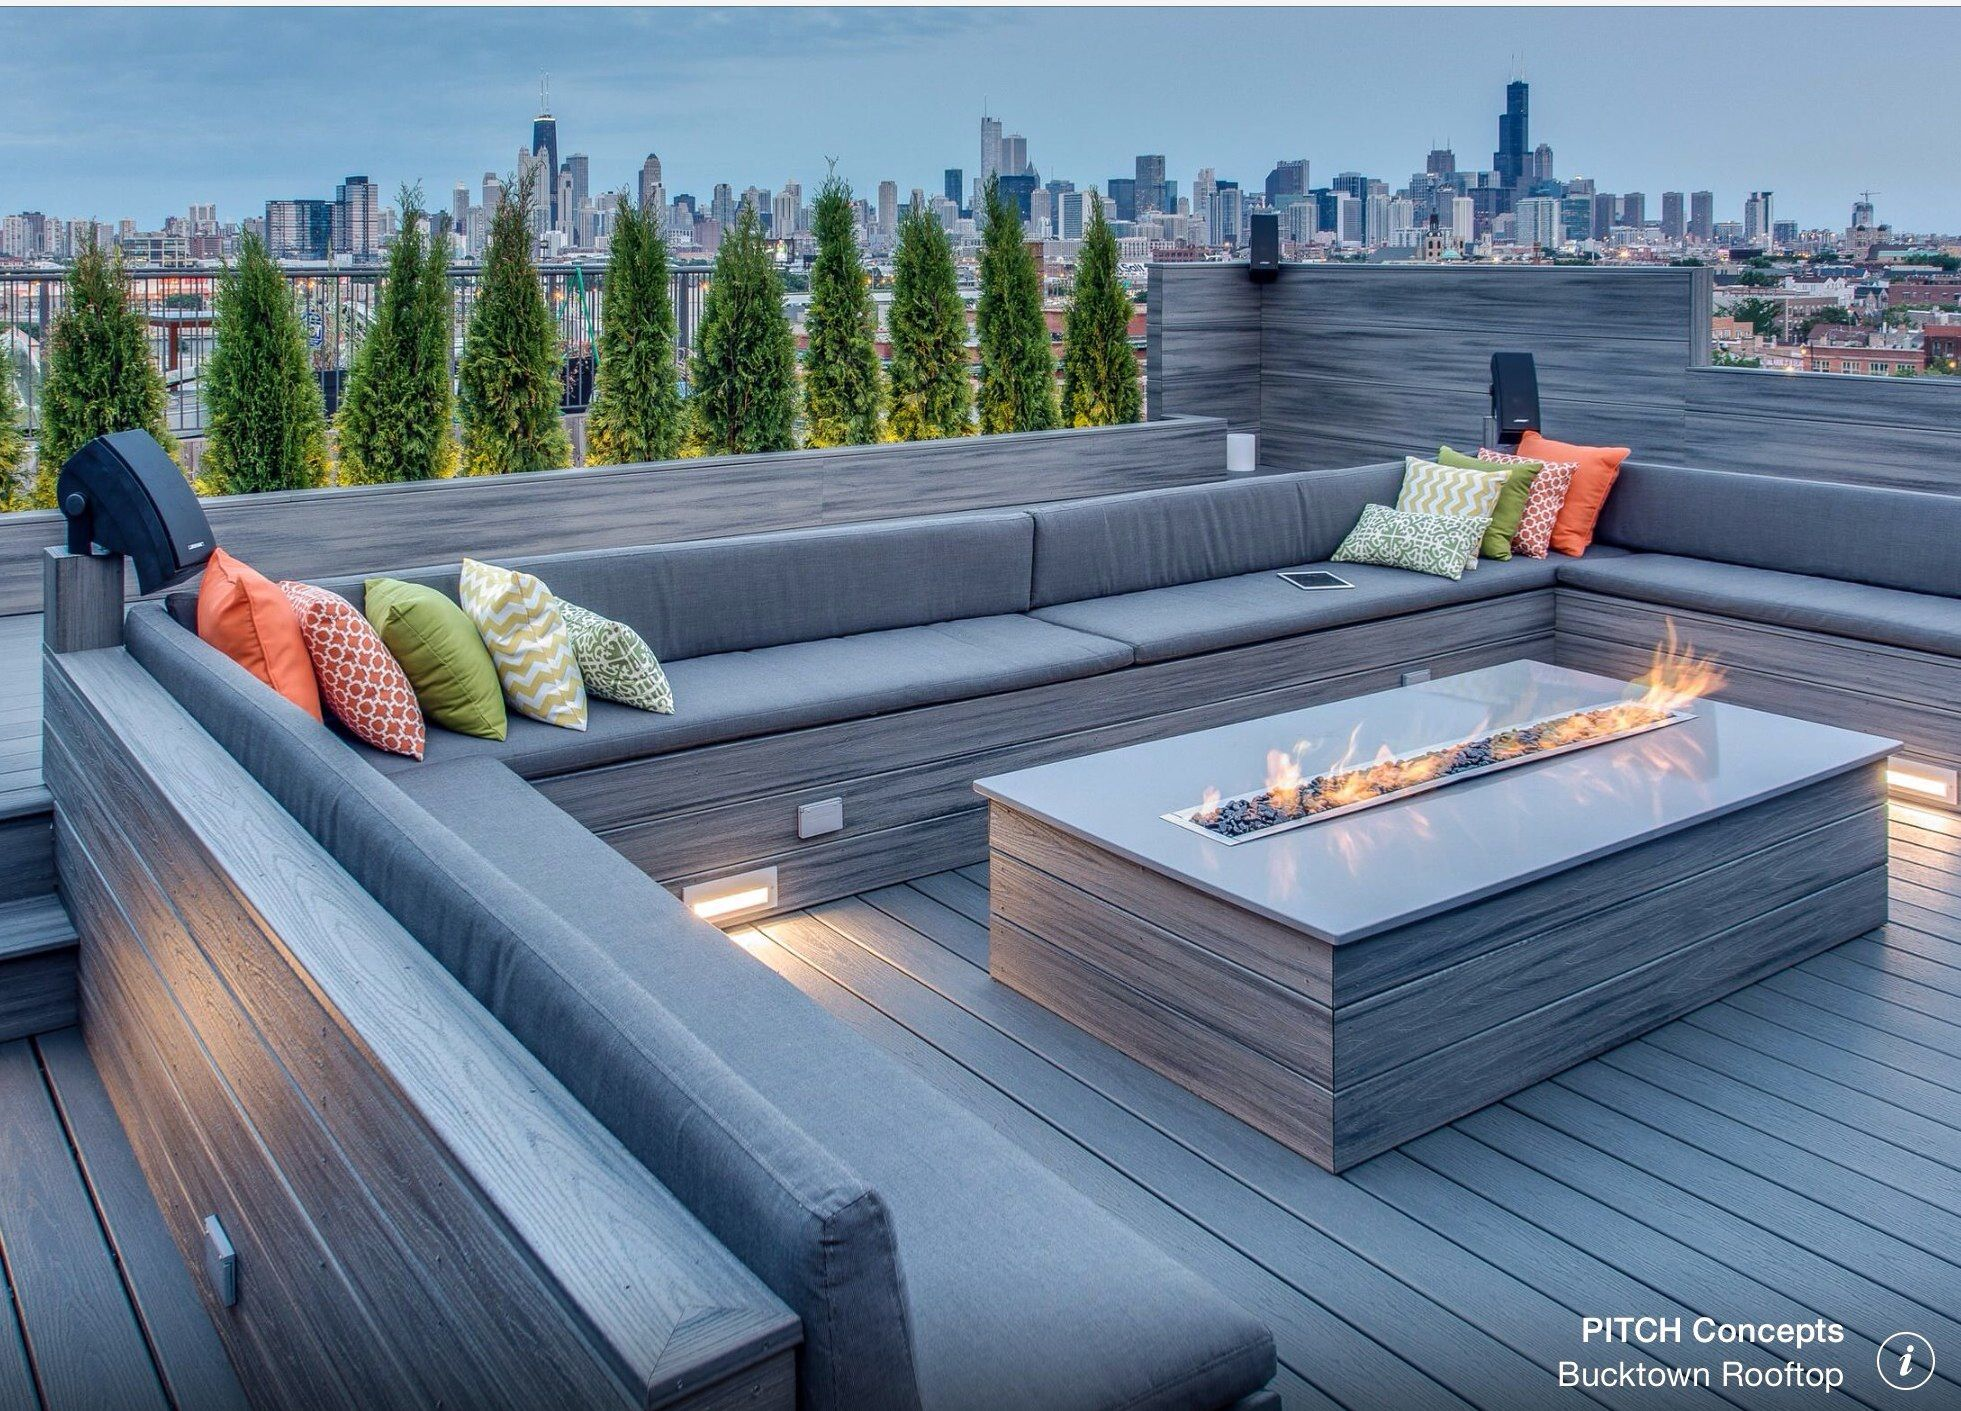 Terraza Rooftop Terrace Design Terrace Design Rooftop Patio